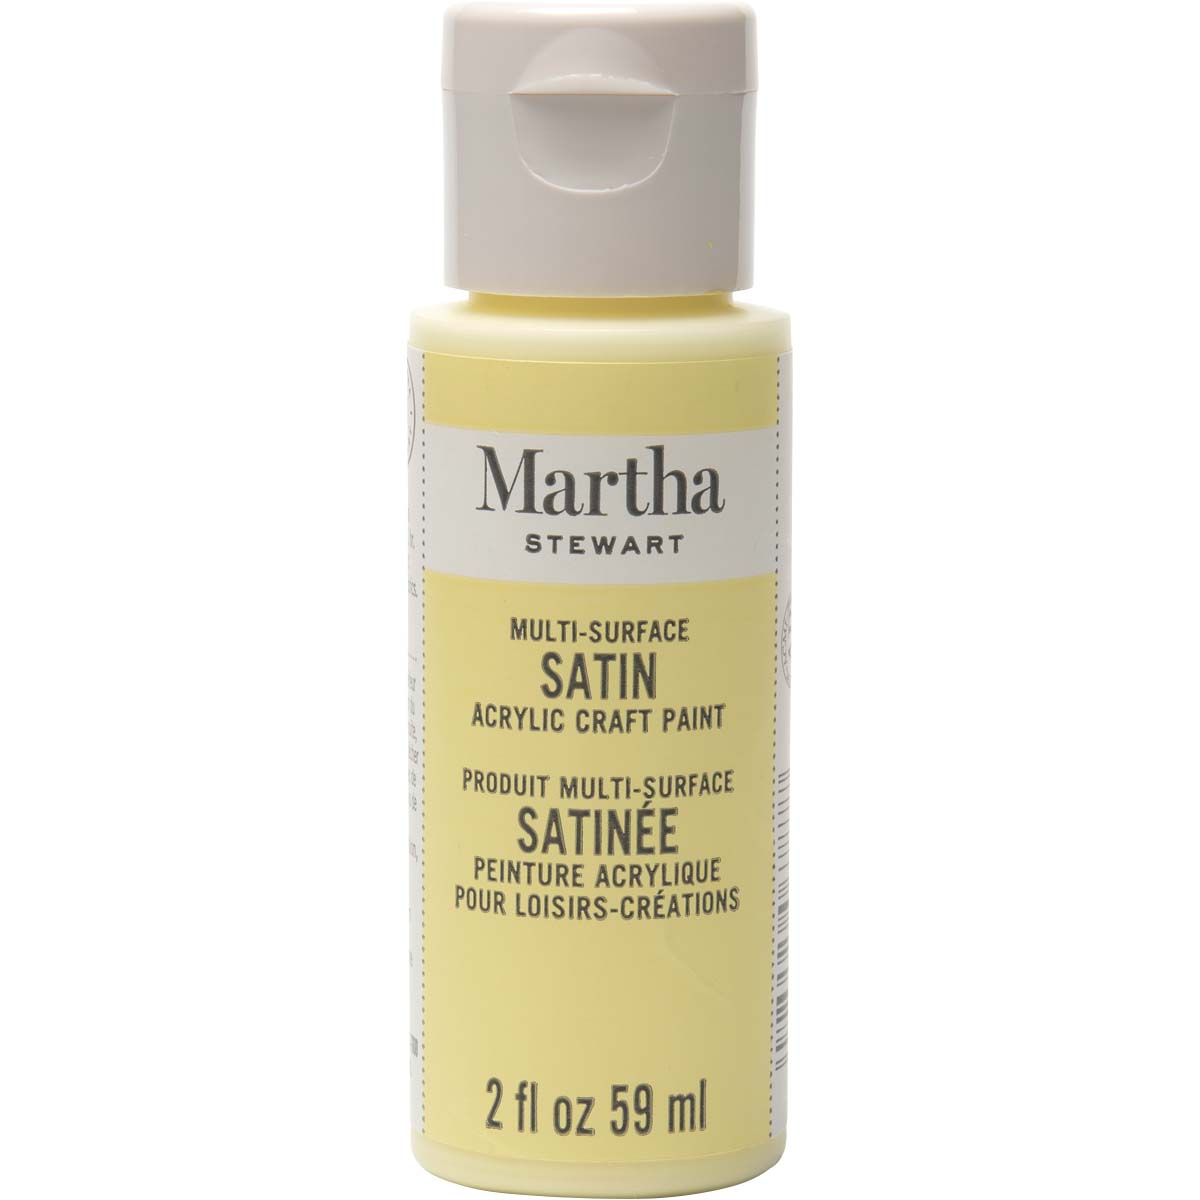 Martha Stewart ® Multi-Surface Satin Acrylic Craft Paint - Couscous, 2 oz. - 32066CA